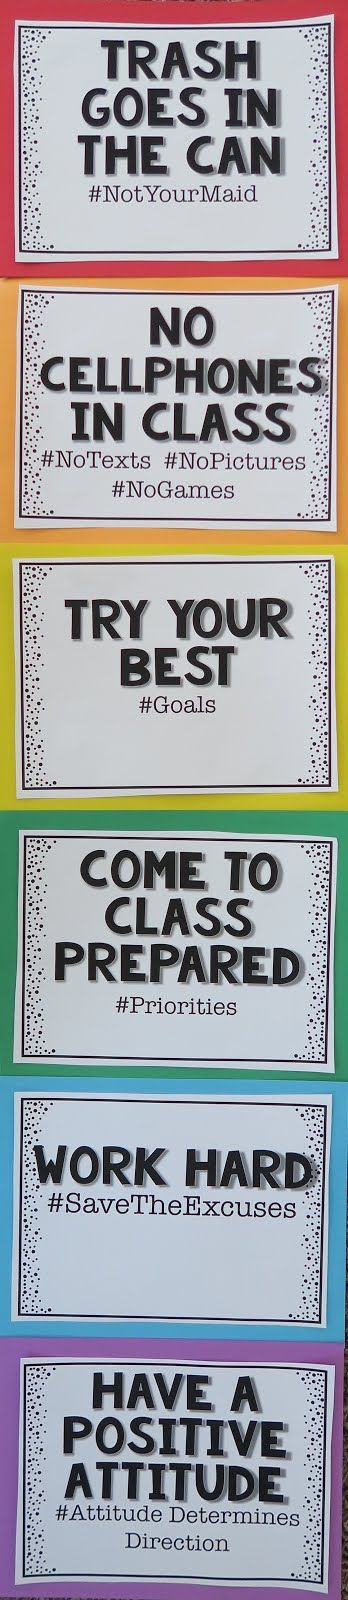 By the time my students reached 5th grade, they have seen all the classroom rules before. My first 2 years in 5th grade, I did the same thin...